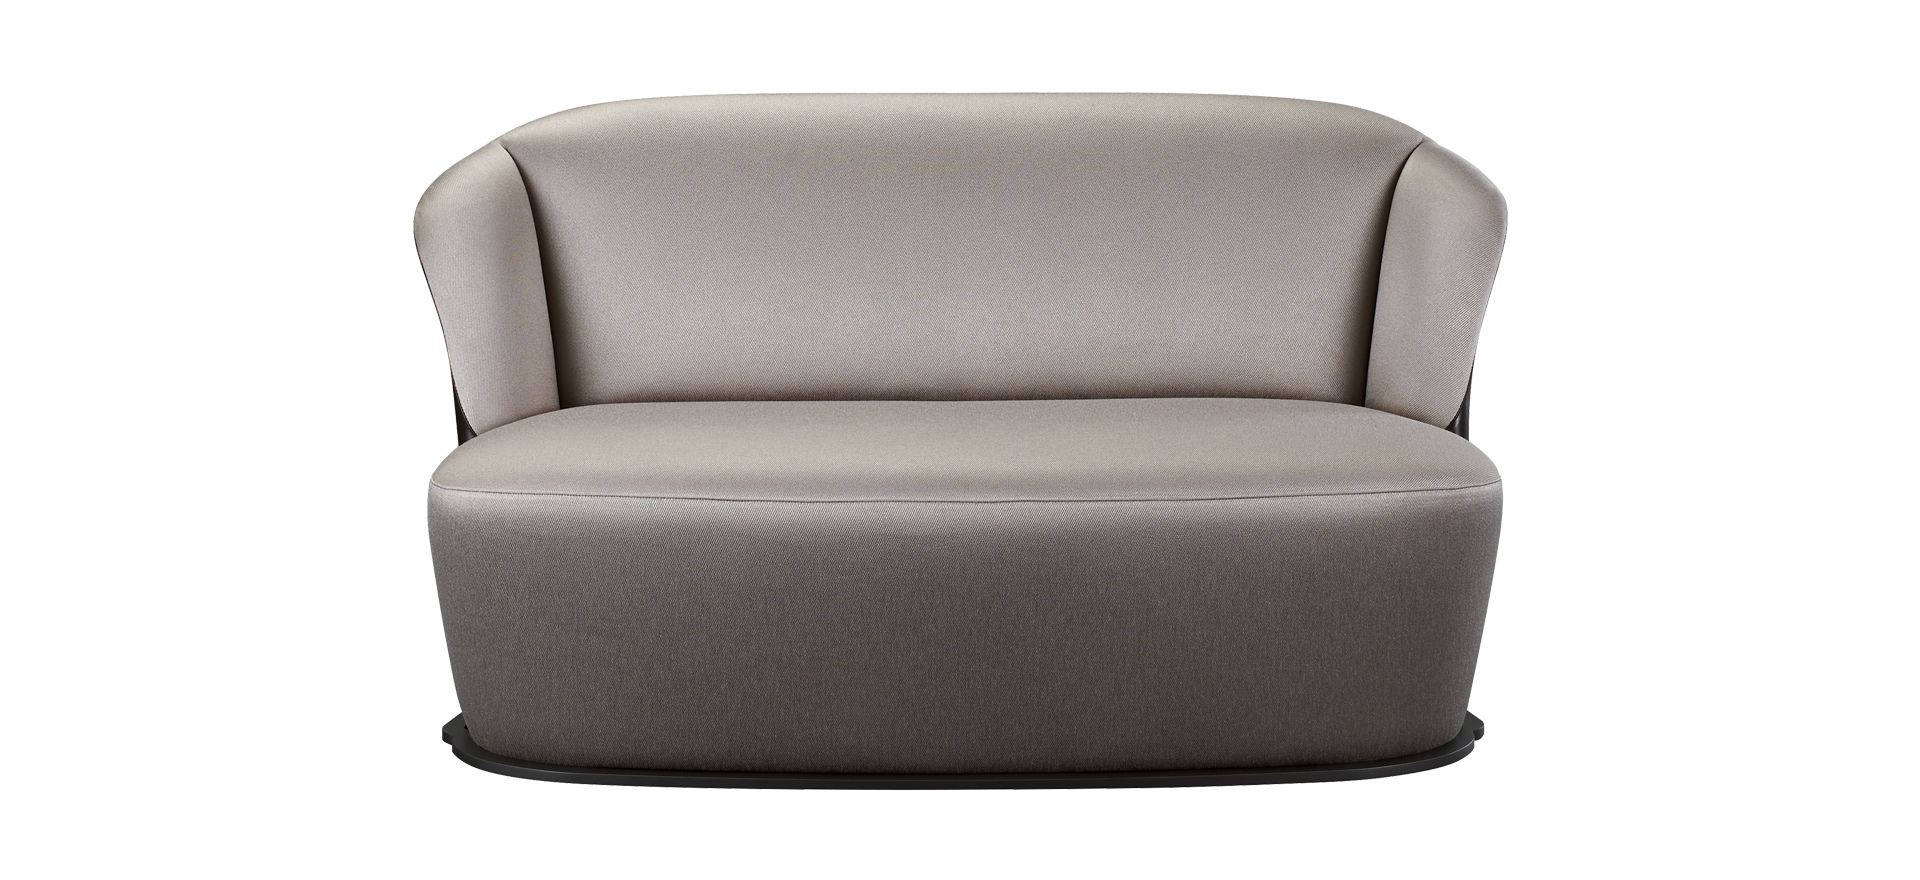 Rosaspina is a sofa covered in fabric and leather with a metal base, from Promemoria's catalogue | Promemoria